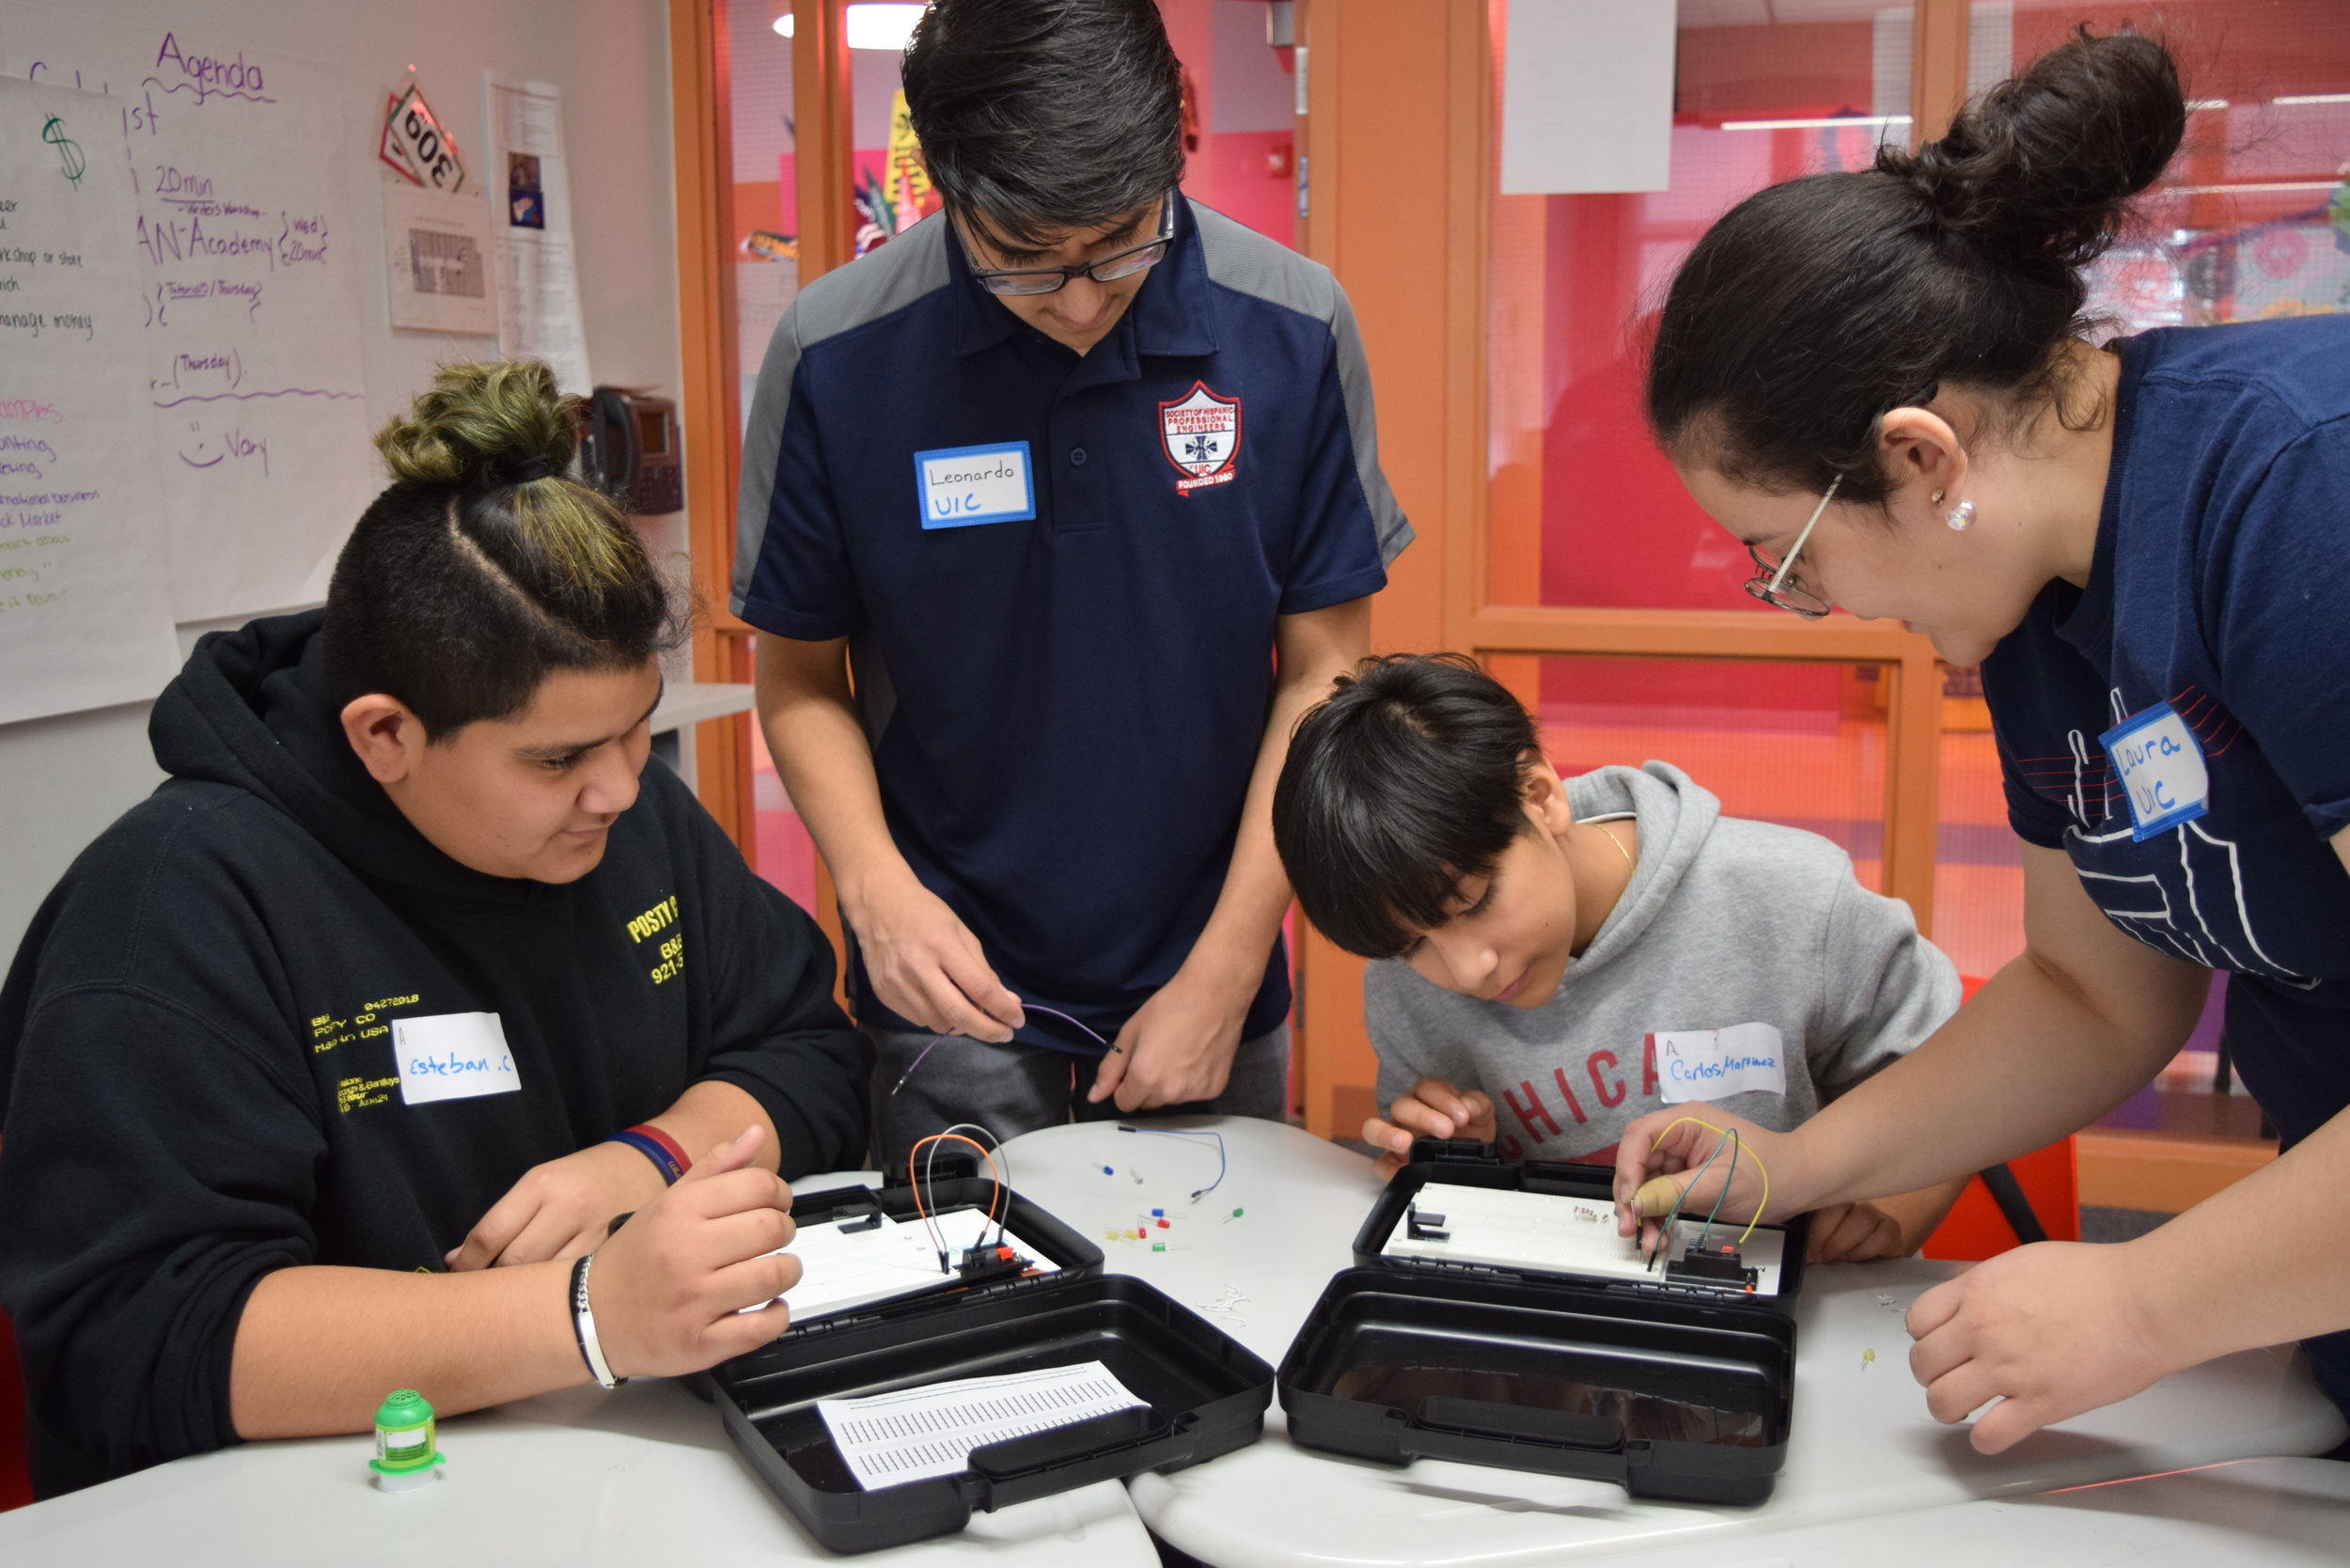 Noche de Ciencias - Noche de Ciencias is meant to inspire and teach students about STEM career fields through interactive activities. Students have the opportunity to discover new career avenues while parents are encouraged to attend and learn about the higher education application process!